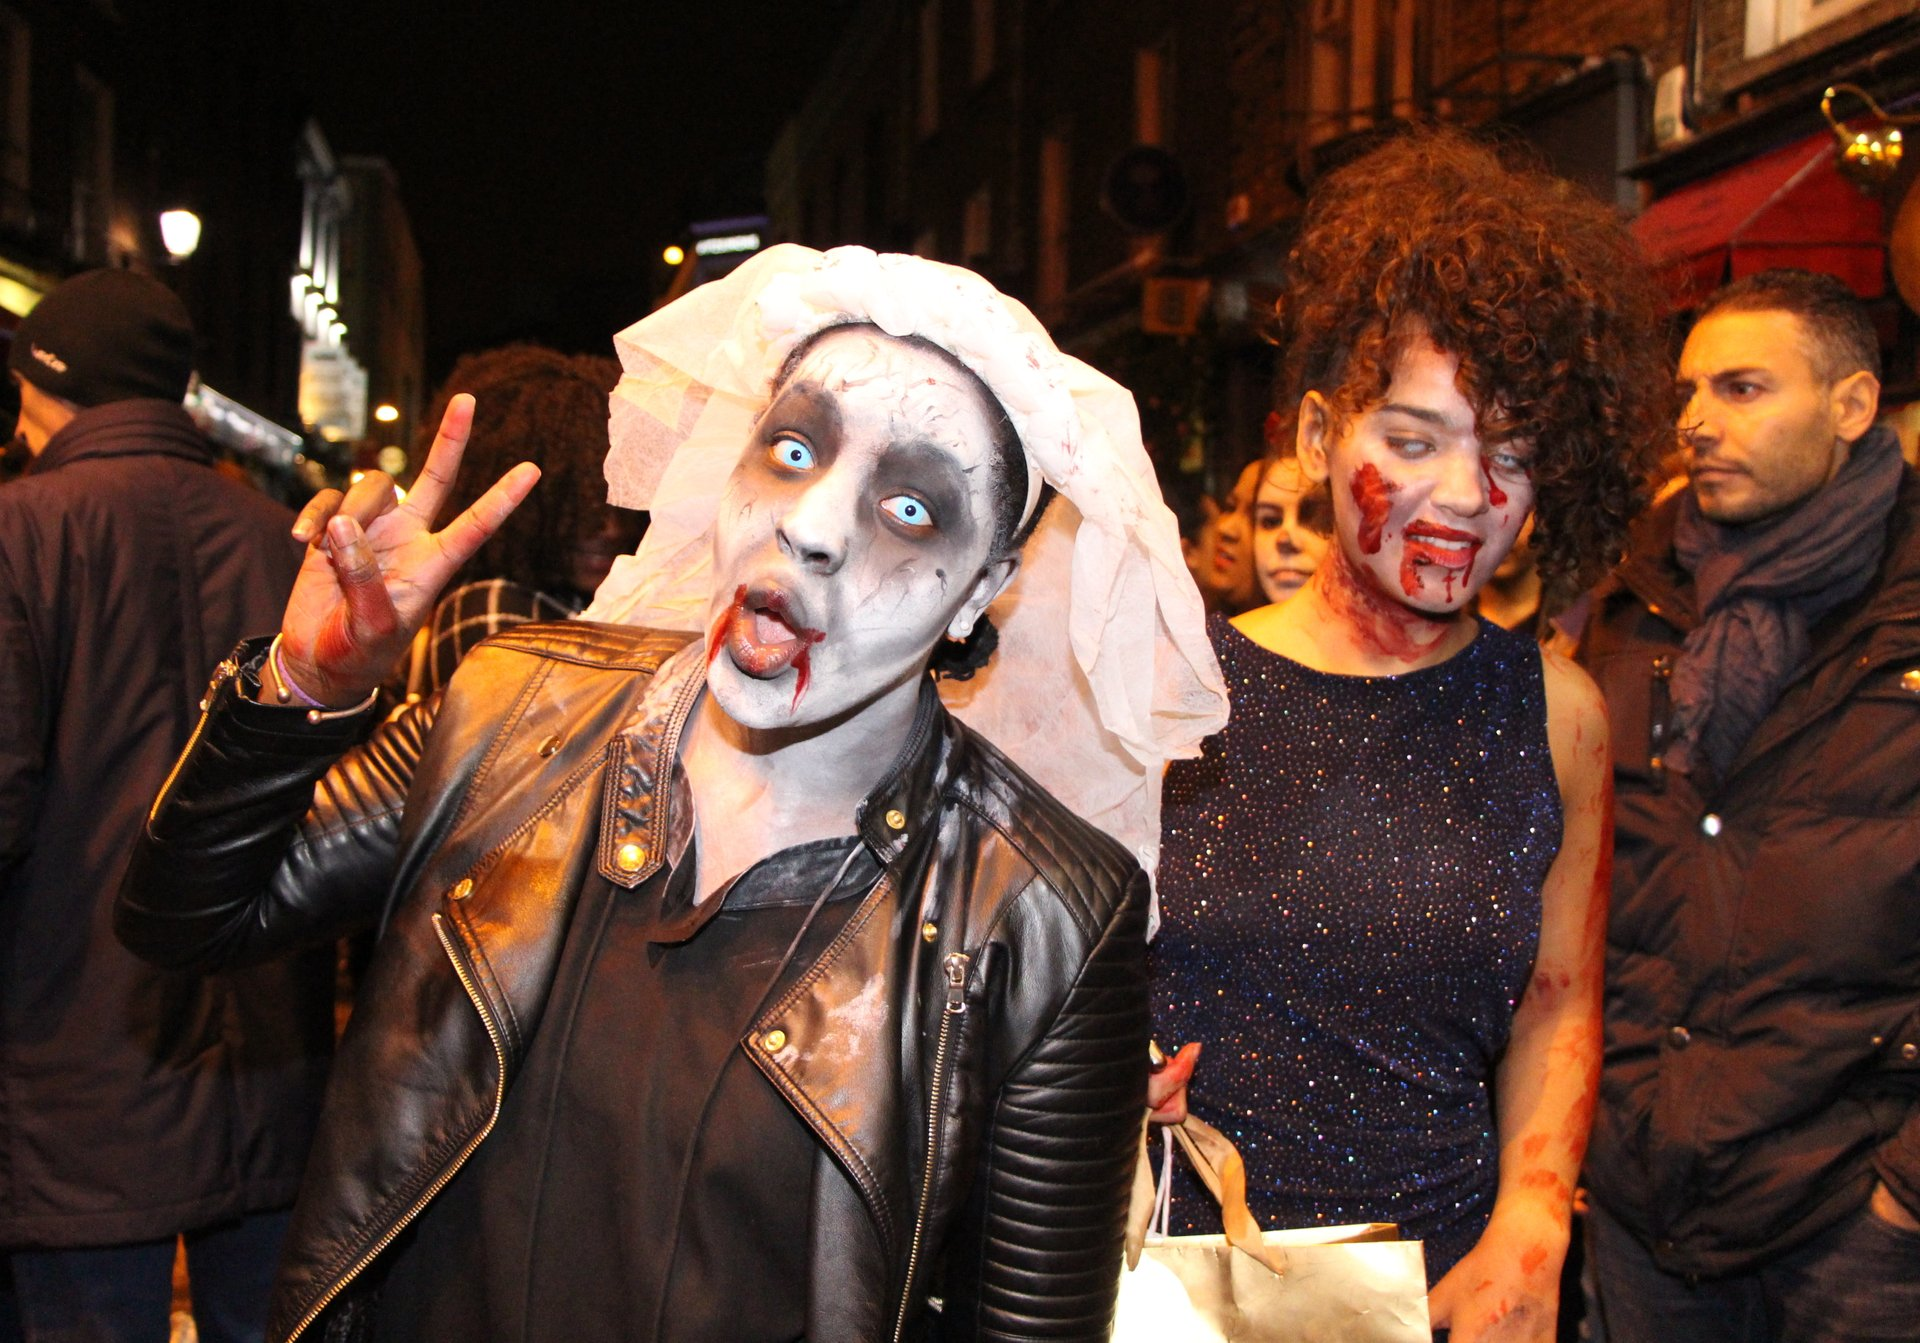 Halloween night in the streets of Dublin 2020